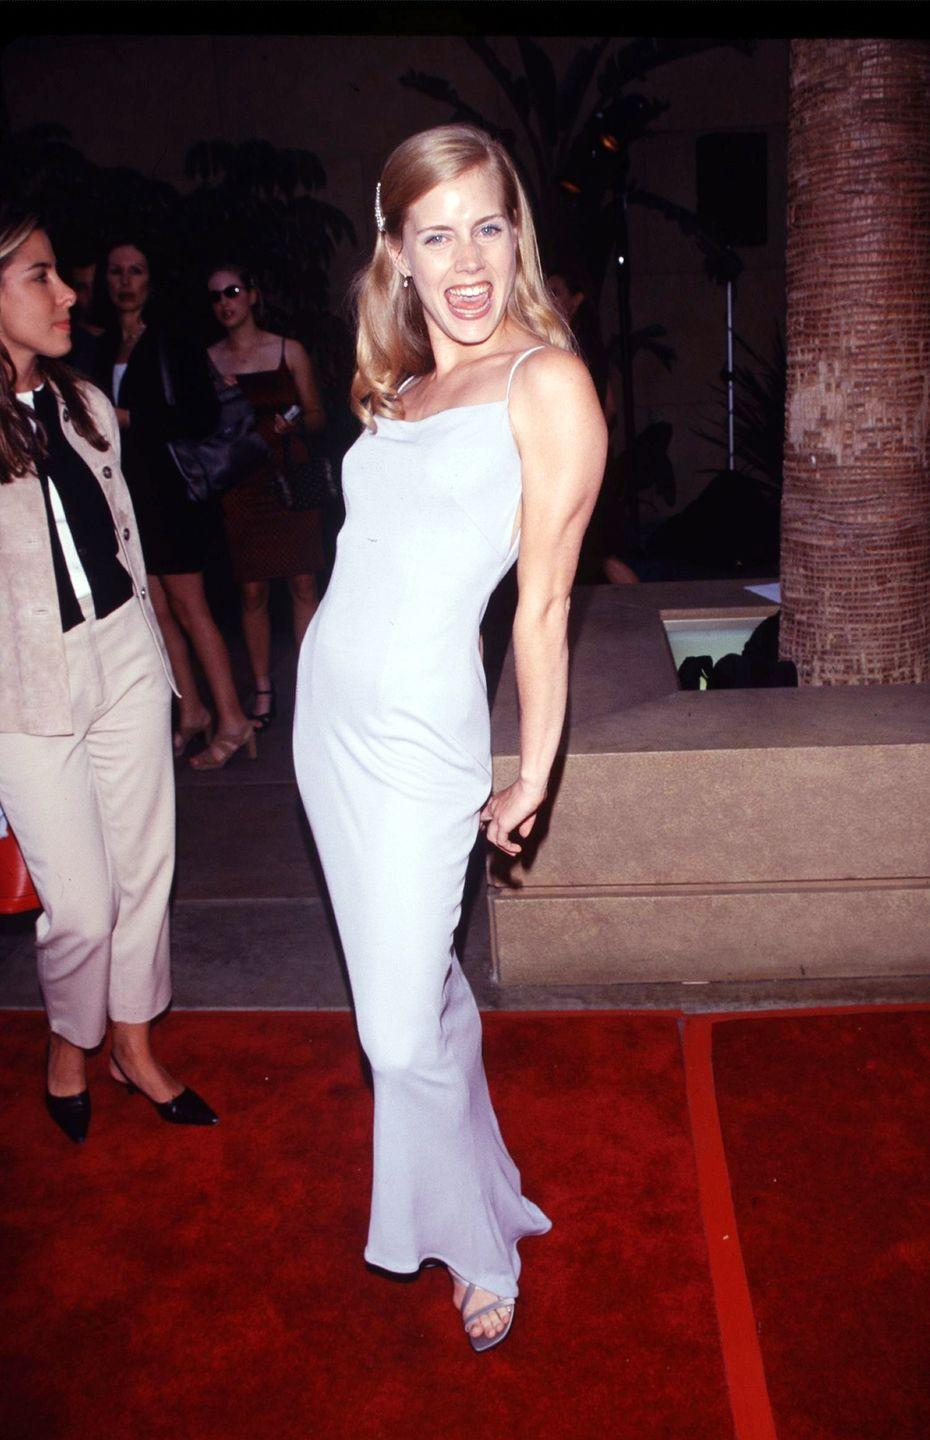 <p>Amy Adams seems like she enjoyed her big red carpet debut when she attended the premiere of her first film, <em>Drop Dead Gorgeous. </em></p>